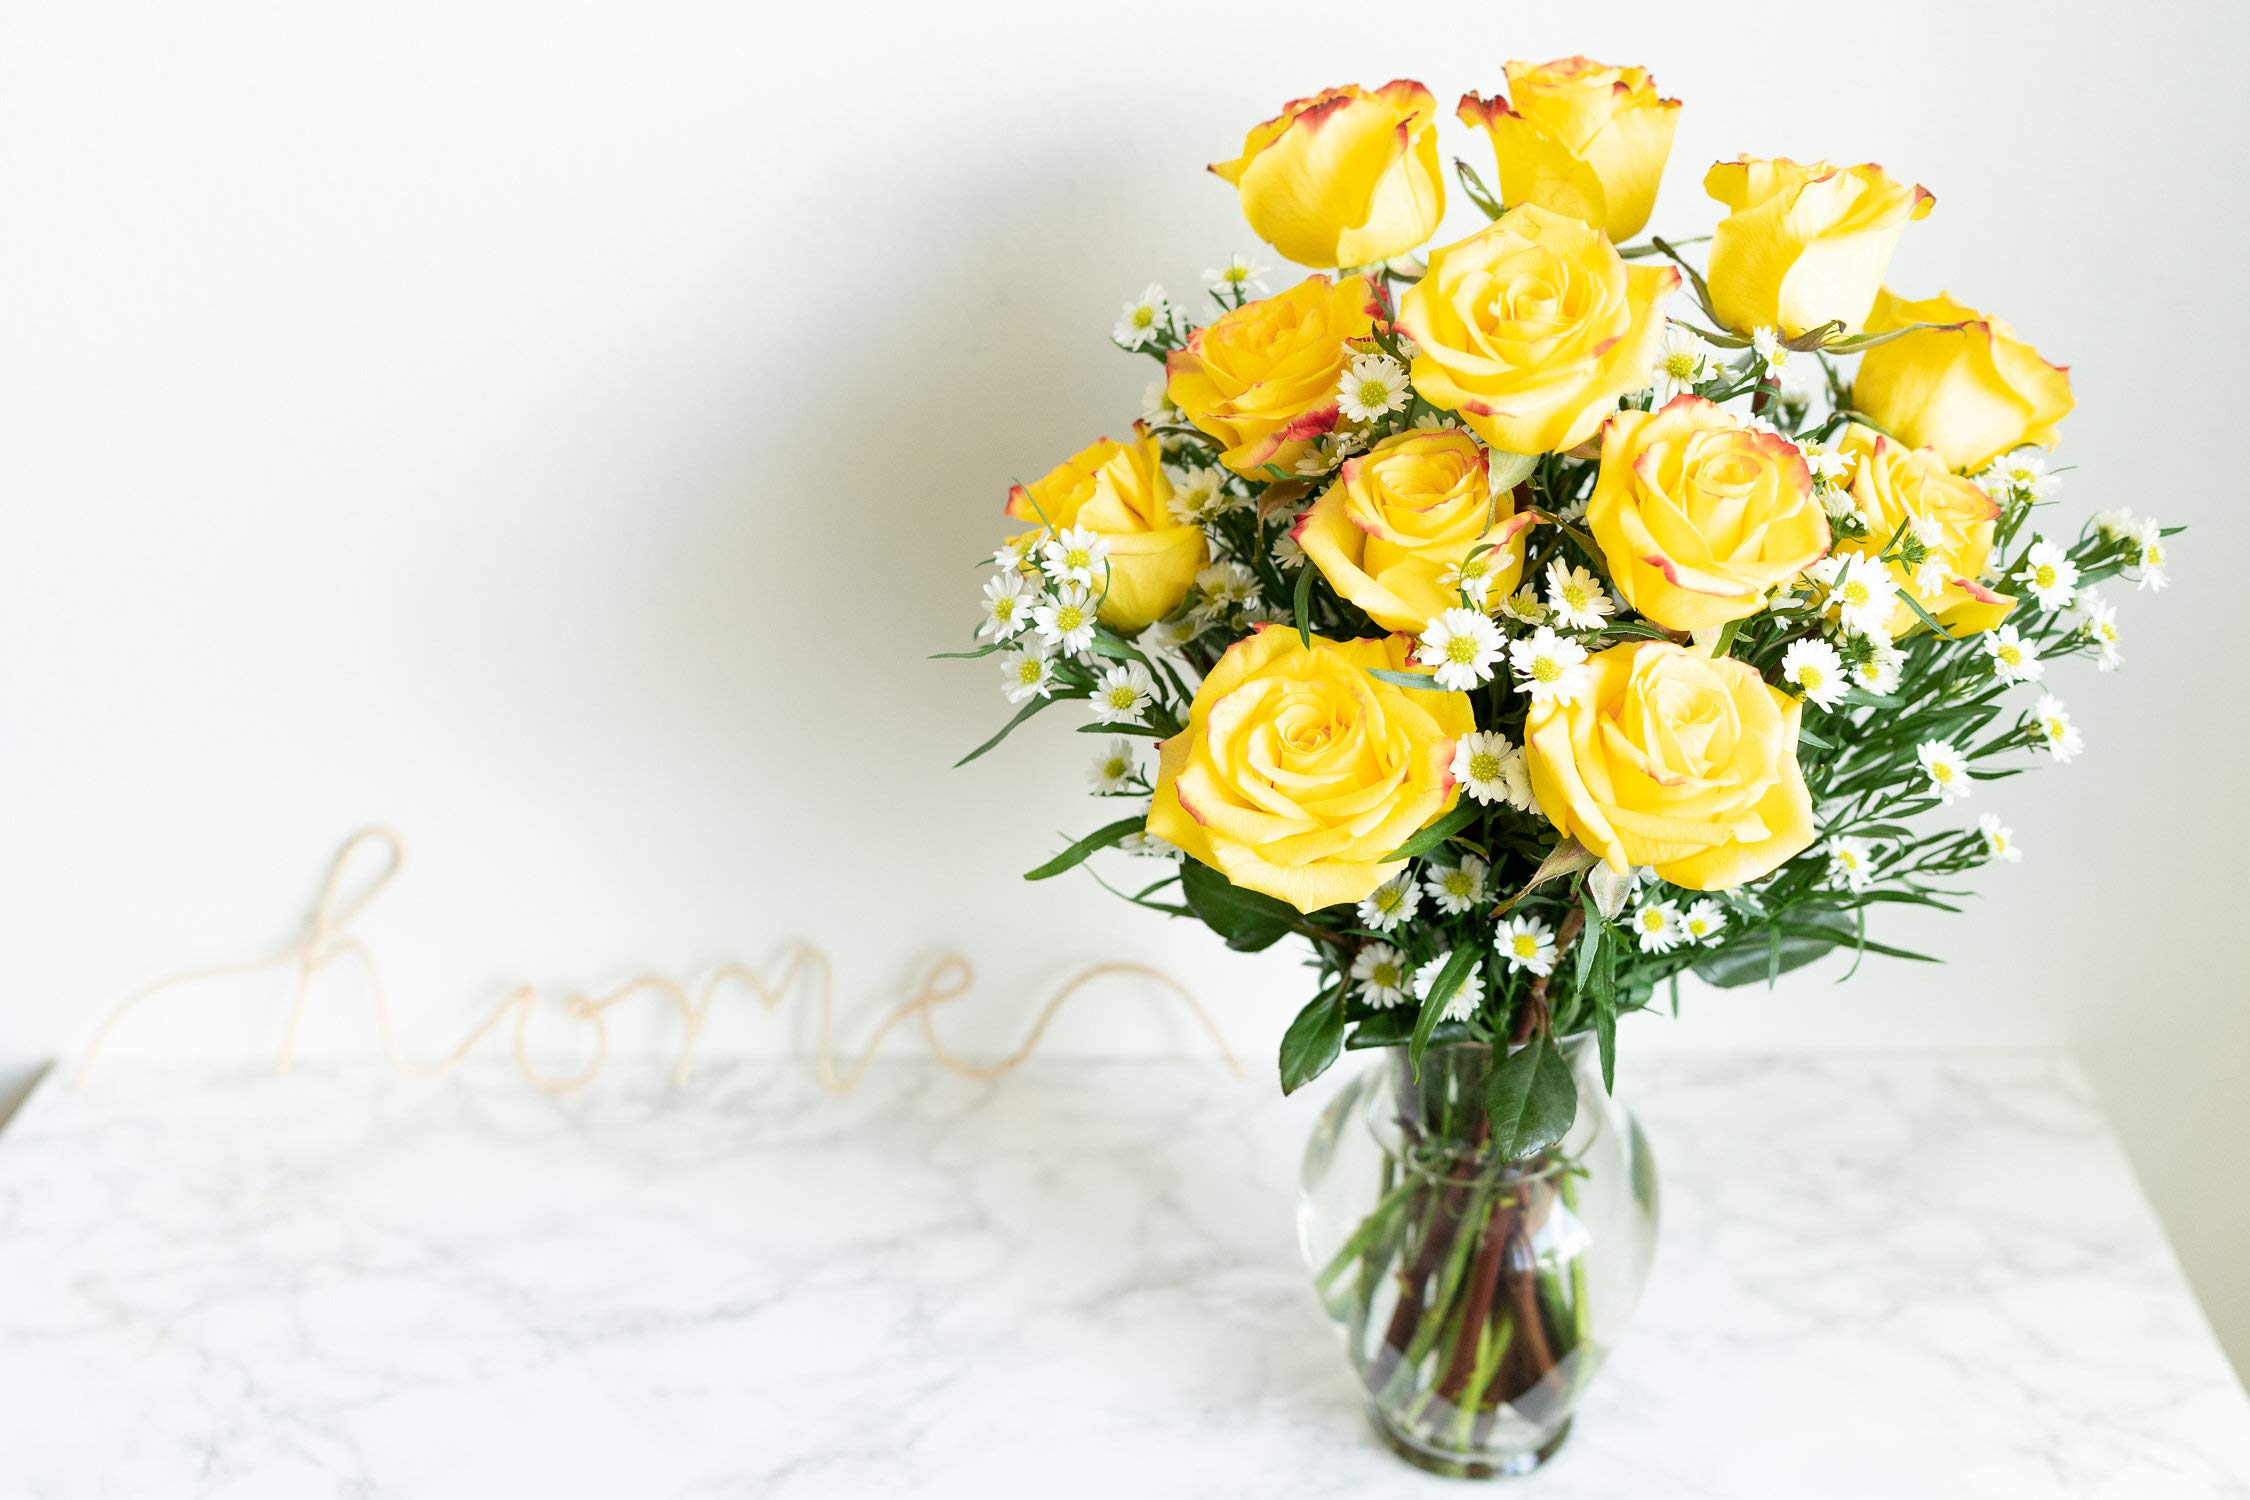 Flowers - One Dozen Festive Roses (Free Vase Included) by From You Flowers (Image #3)